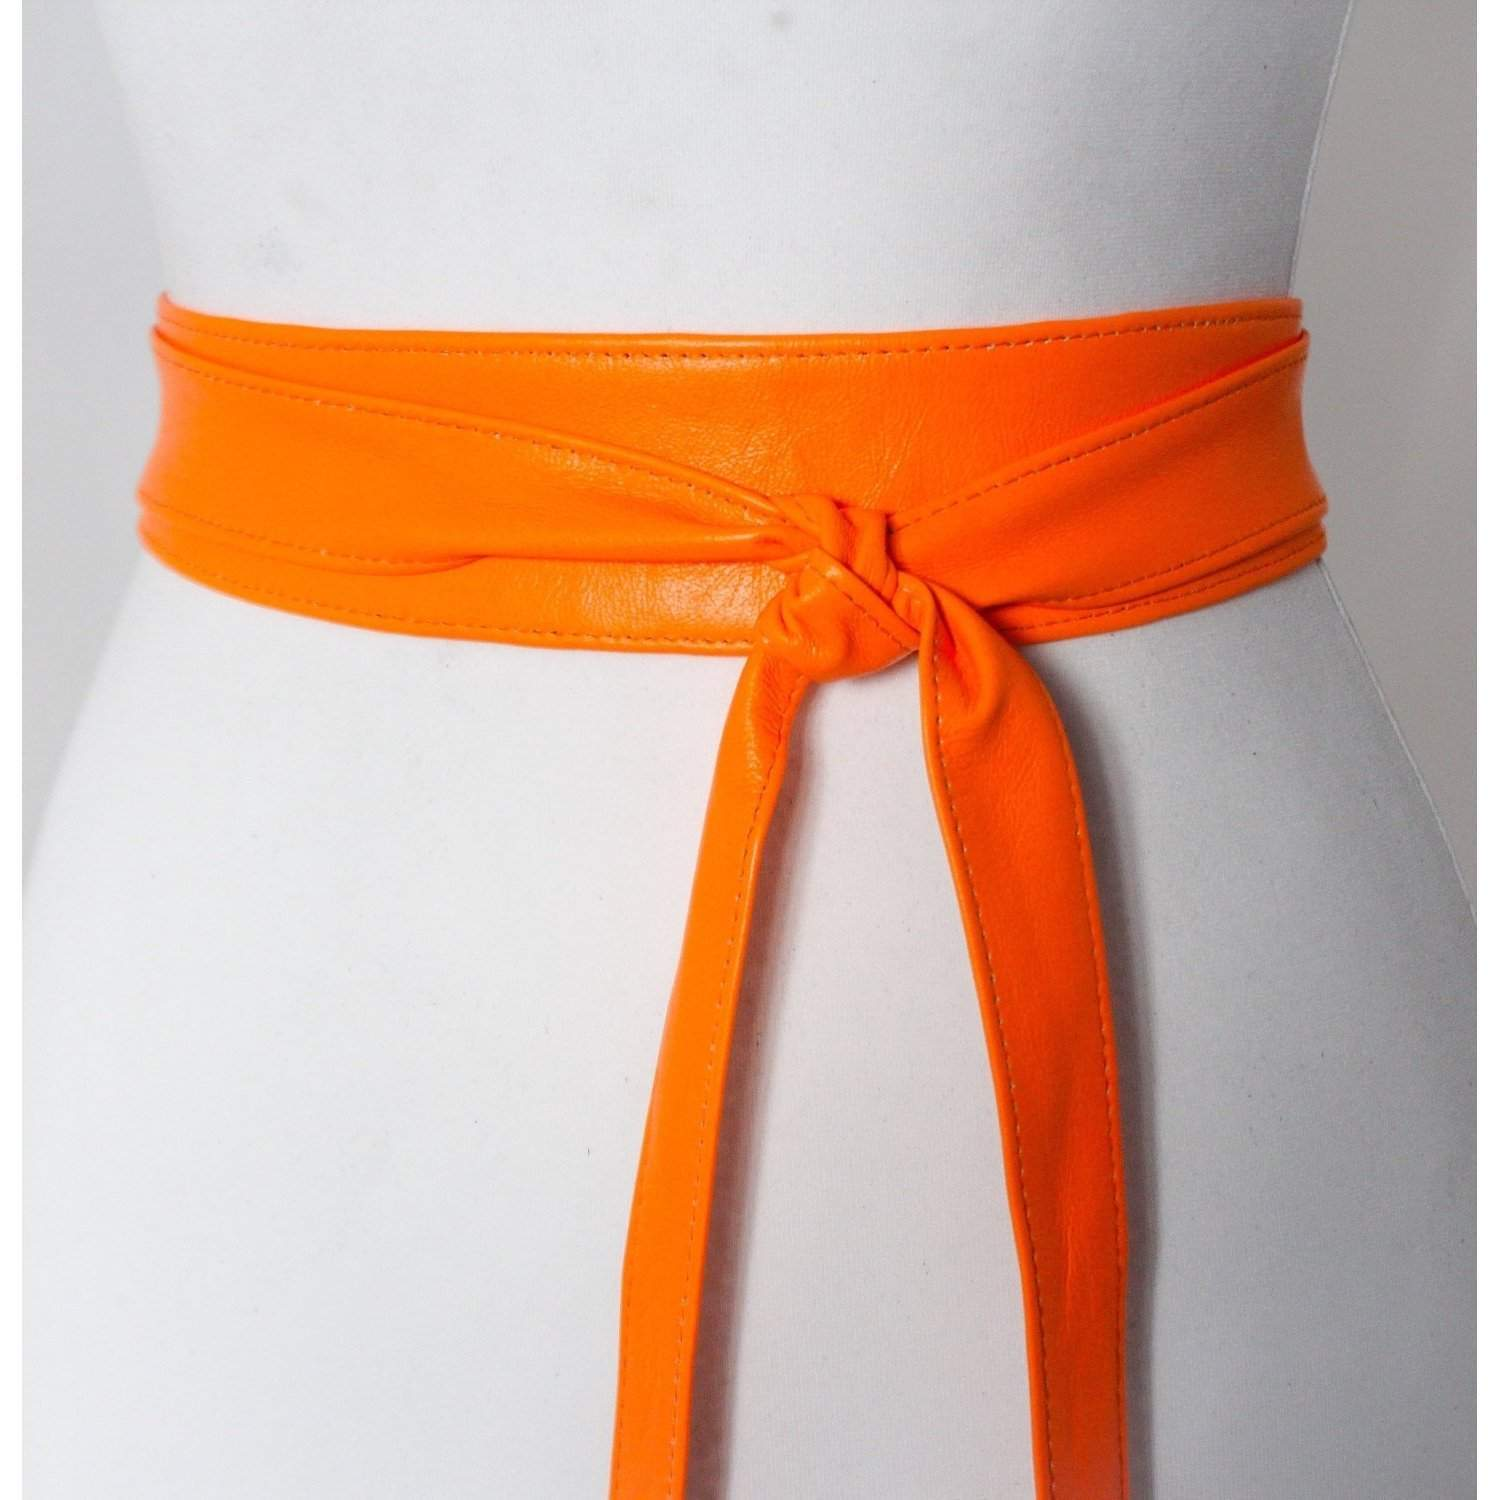 Neon Orange Soft Leather Obi Belt | Waist Obi Belt | Leather tie belt | Real Leather Belt | Plus size belts| Obi Sash Belt | cos play - loveyaayaa